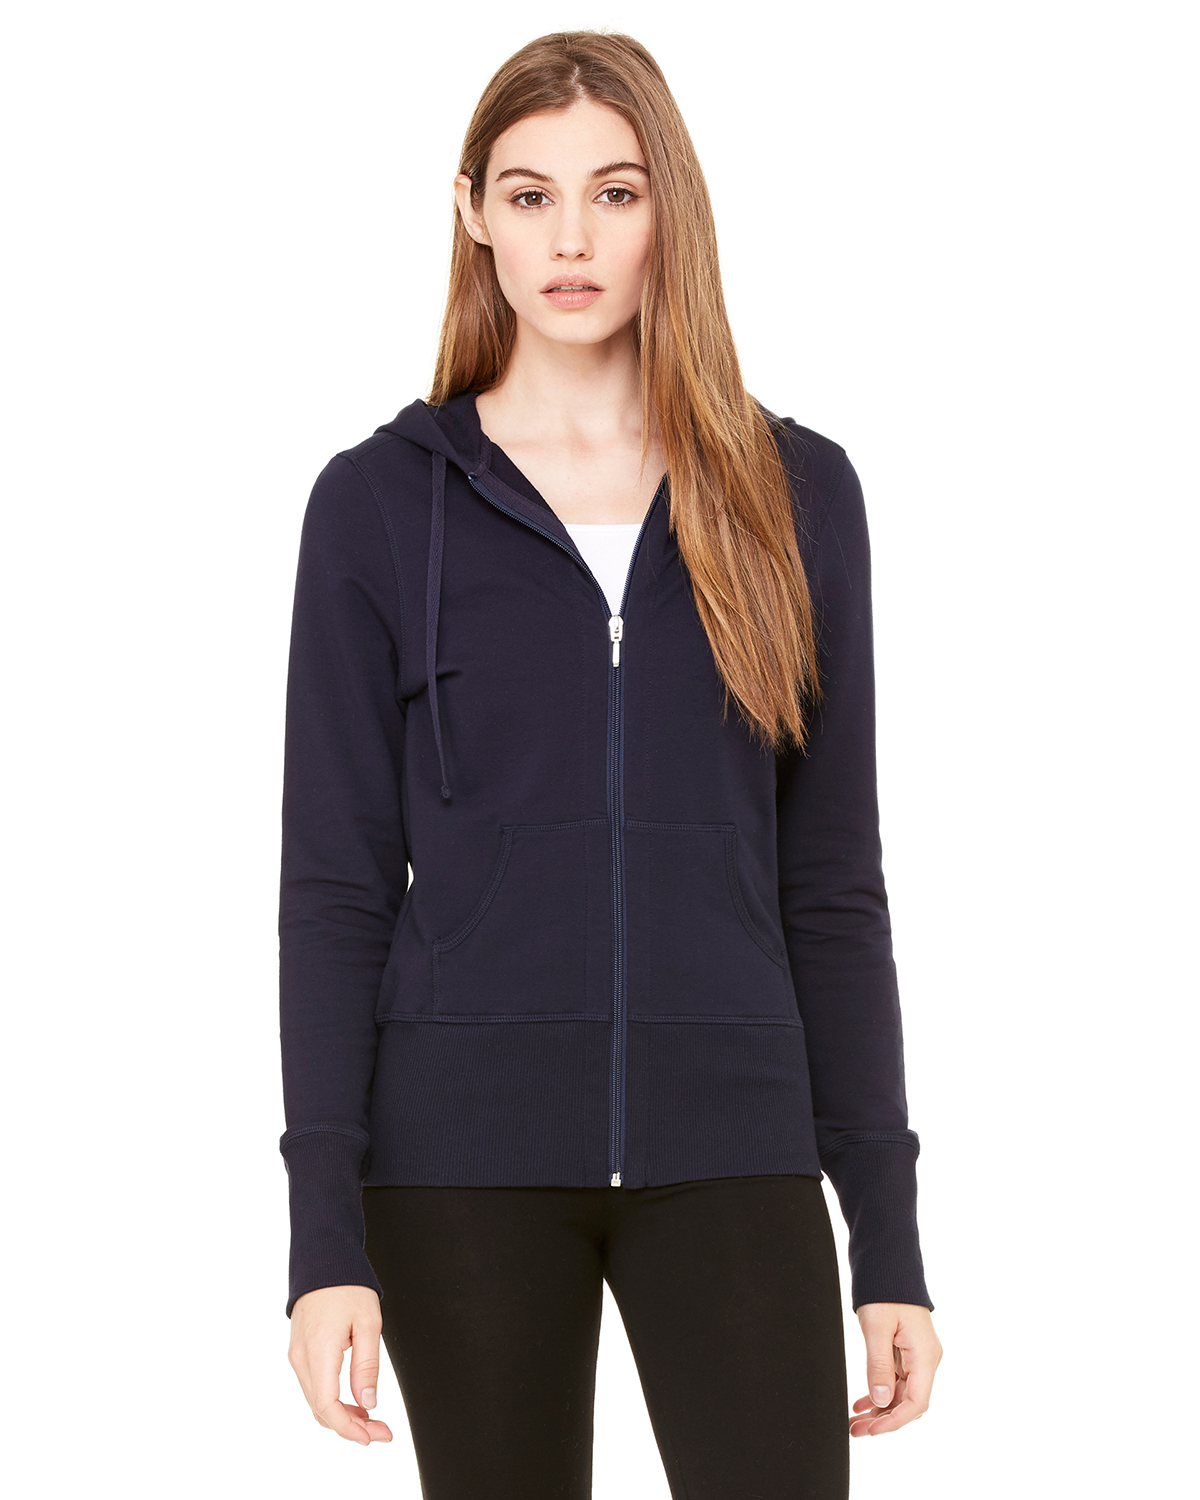 bella 7207 Ladies' French Terry Hooded Lounge Jacket